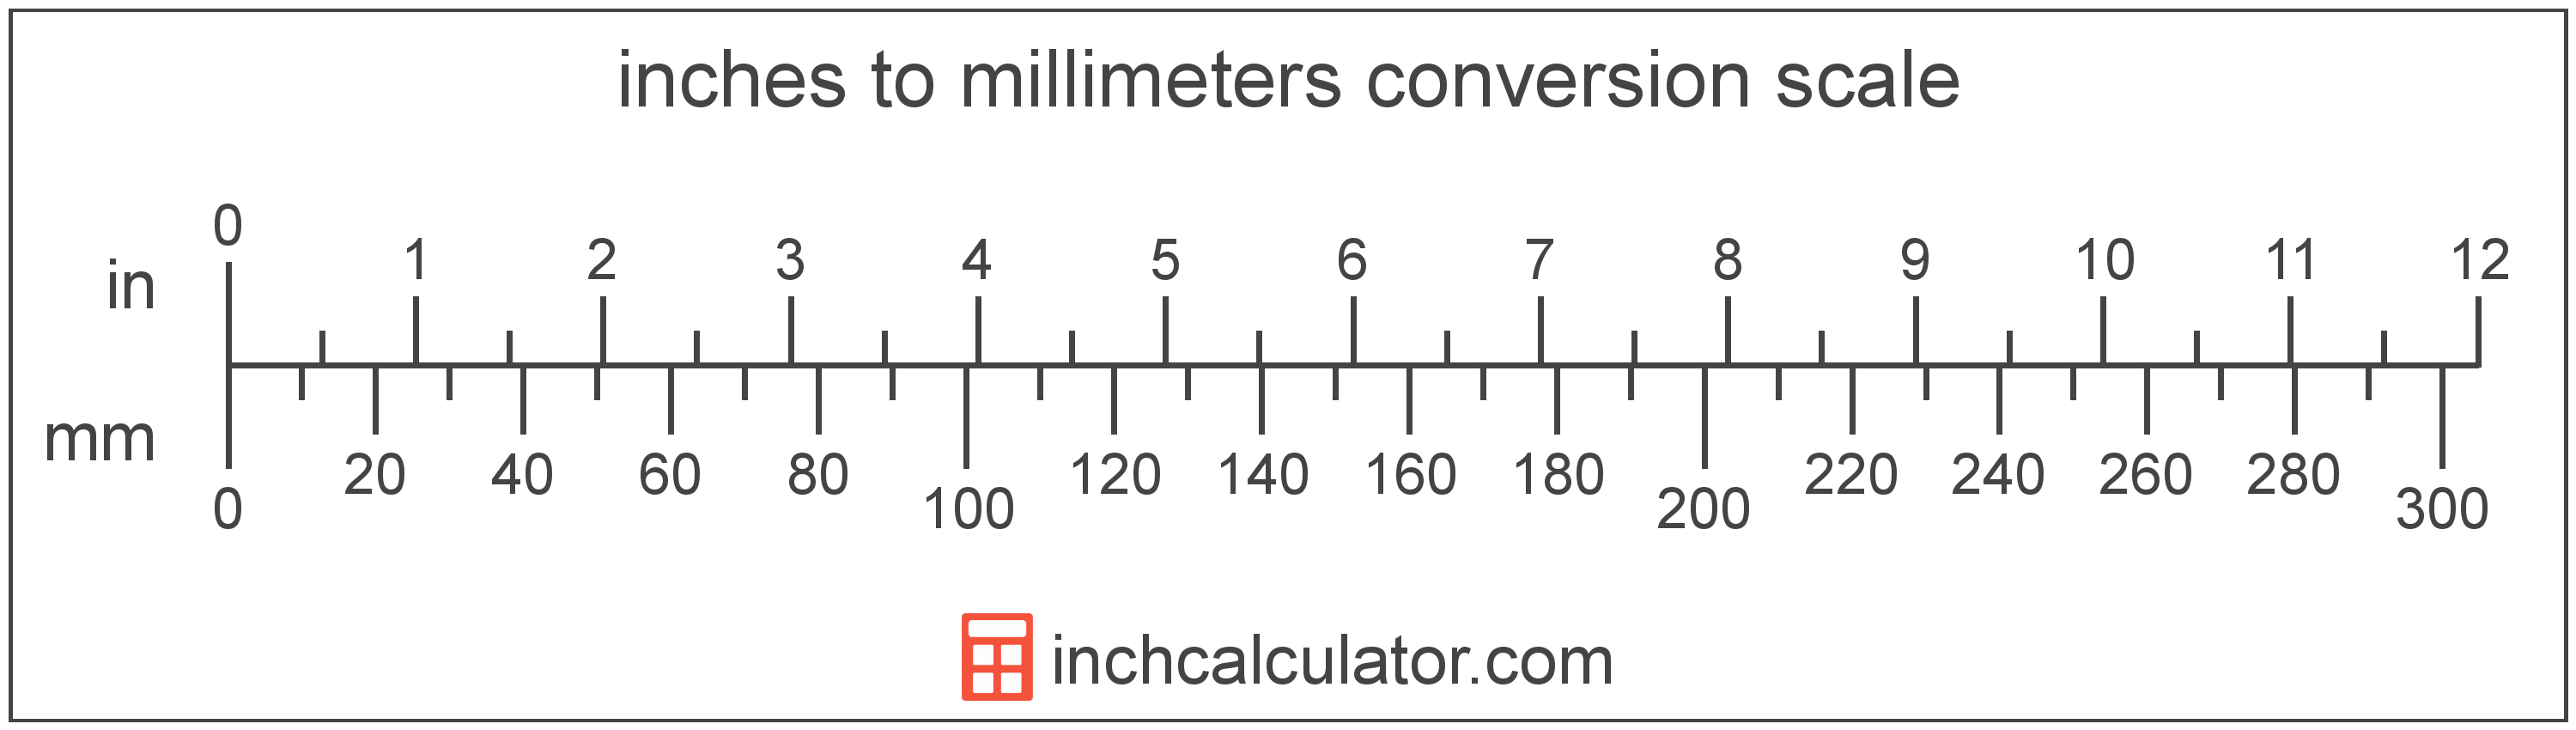 meters and inches are units used to measure length